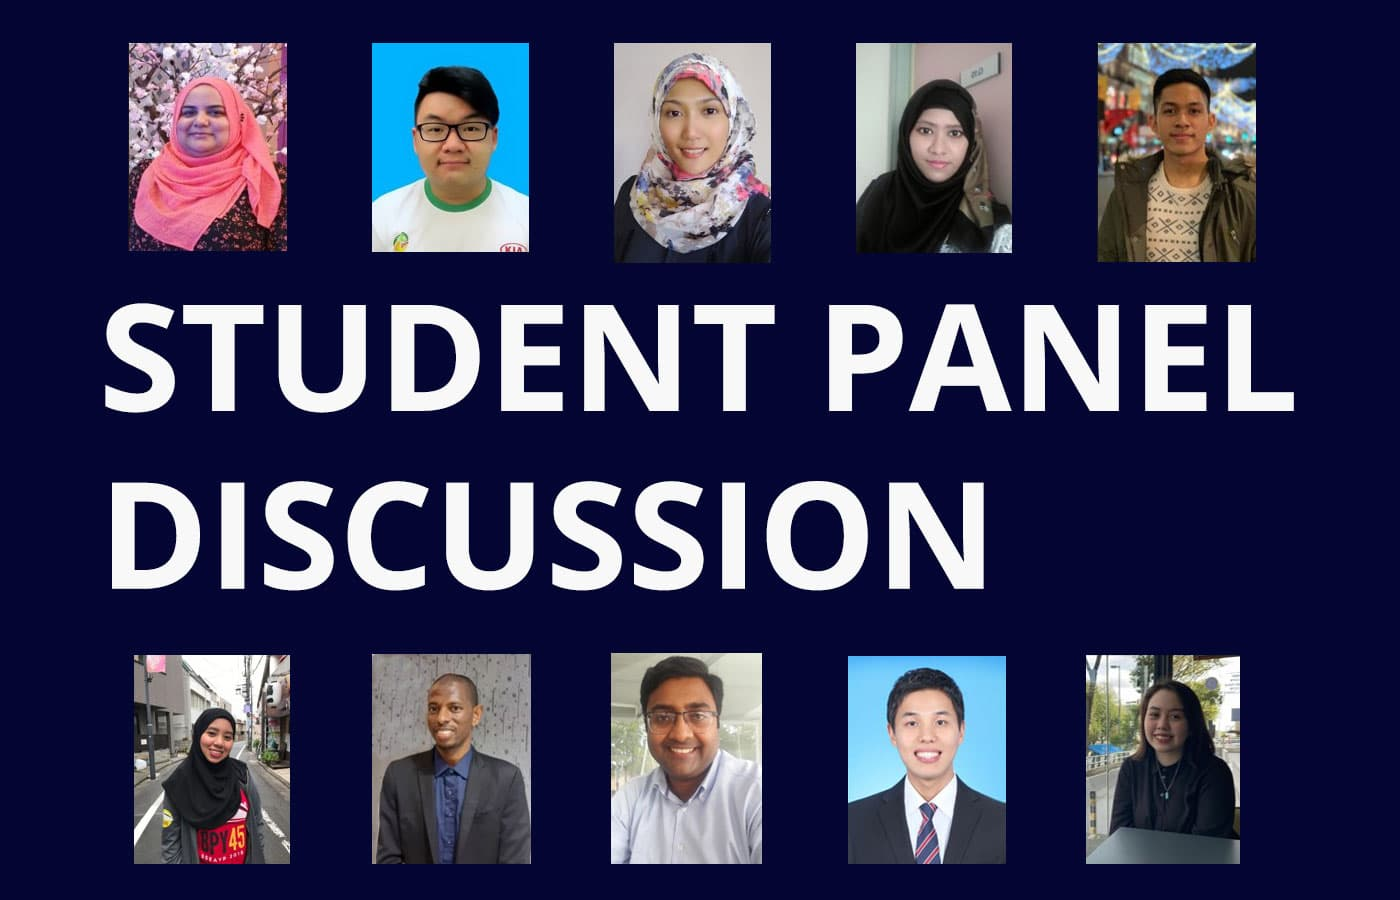 Student Panel Discussion on Covid-19, Society & Education